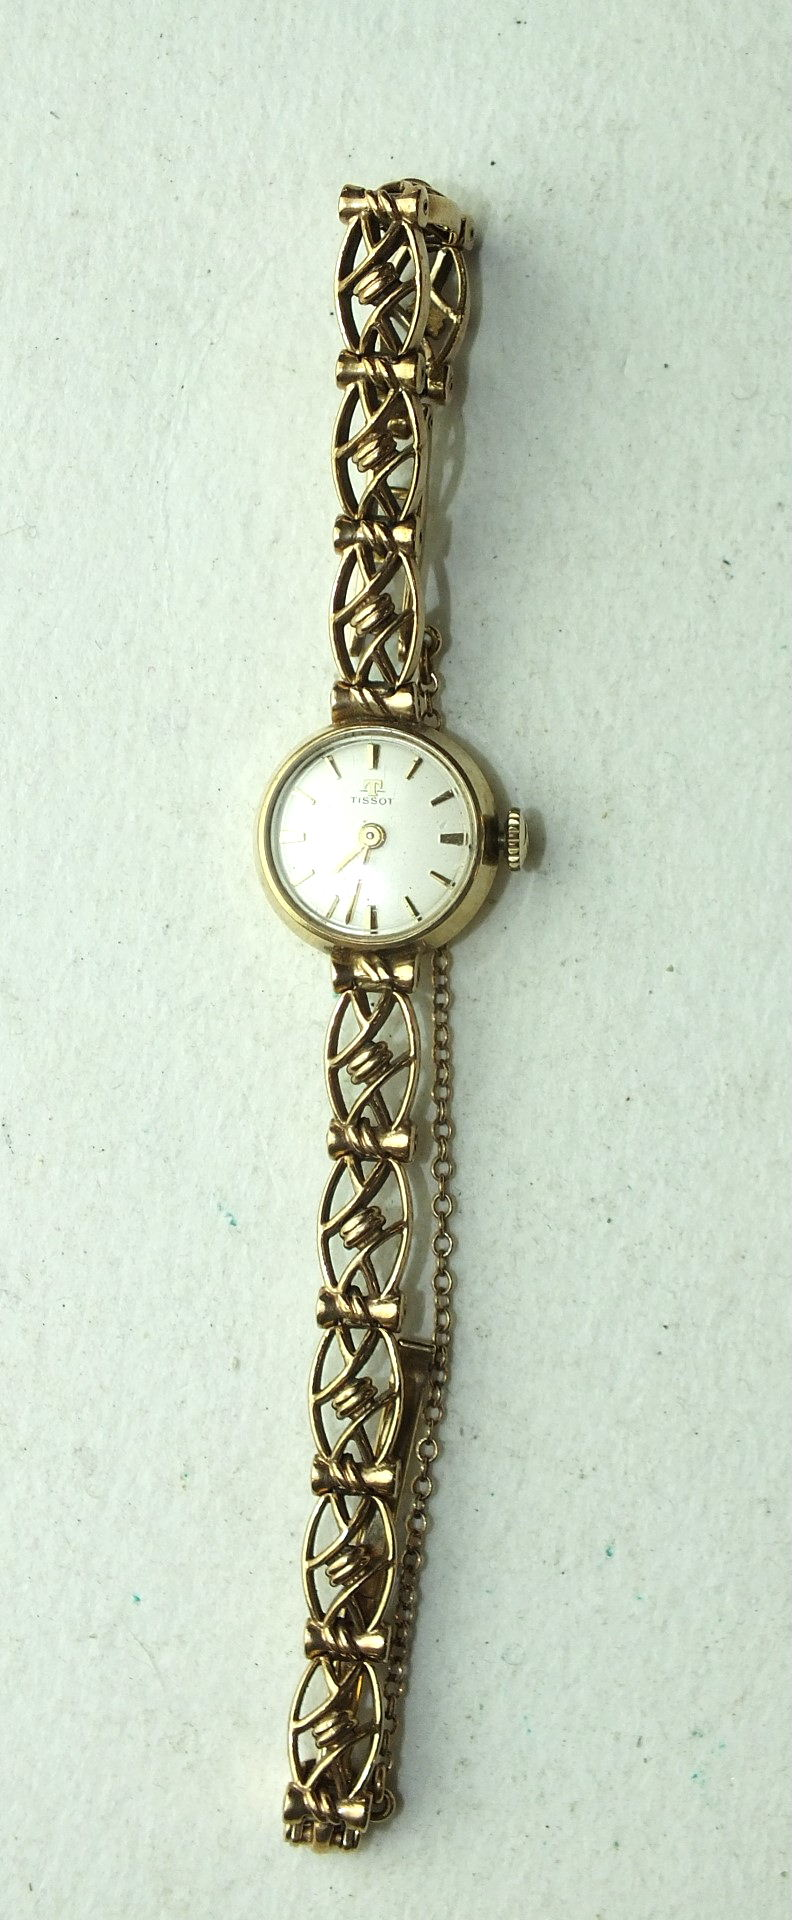 Lot 259 - Tissot, a ladies 9ct gold wrist watch, the circular dial with baton numerals, on 9ct gold fancy-link